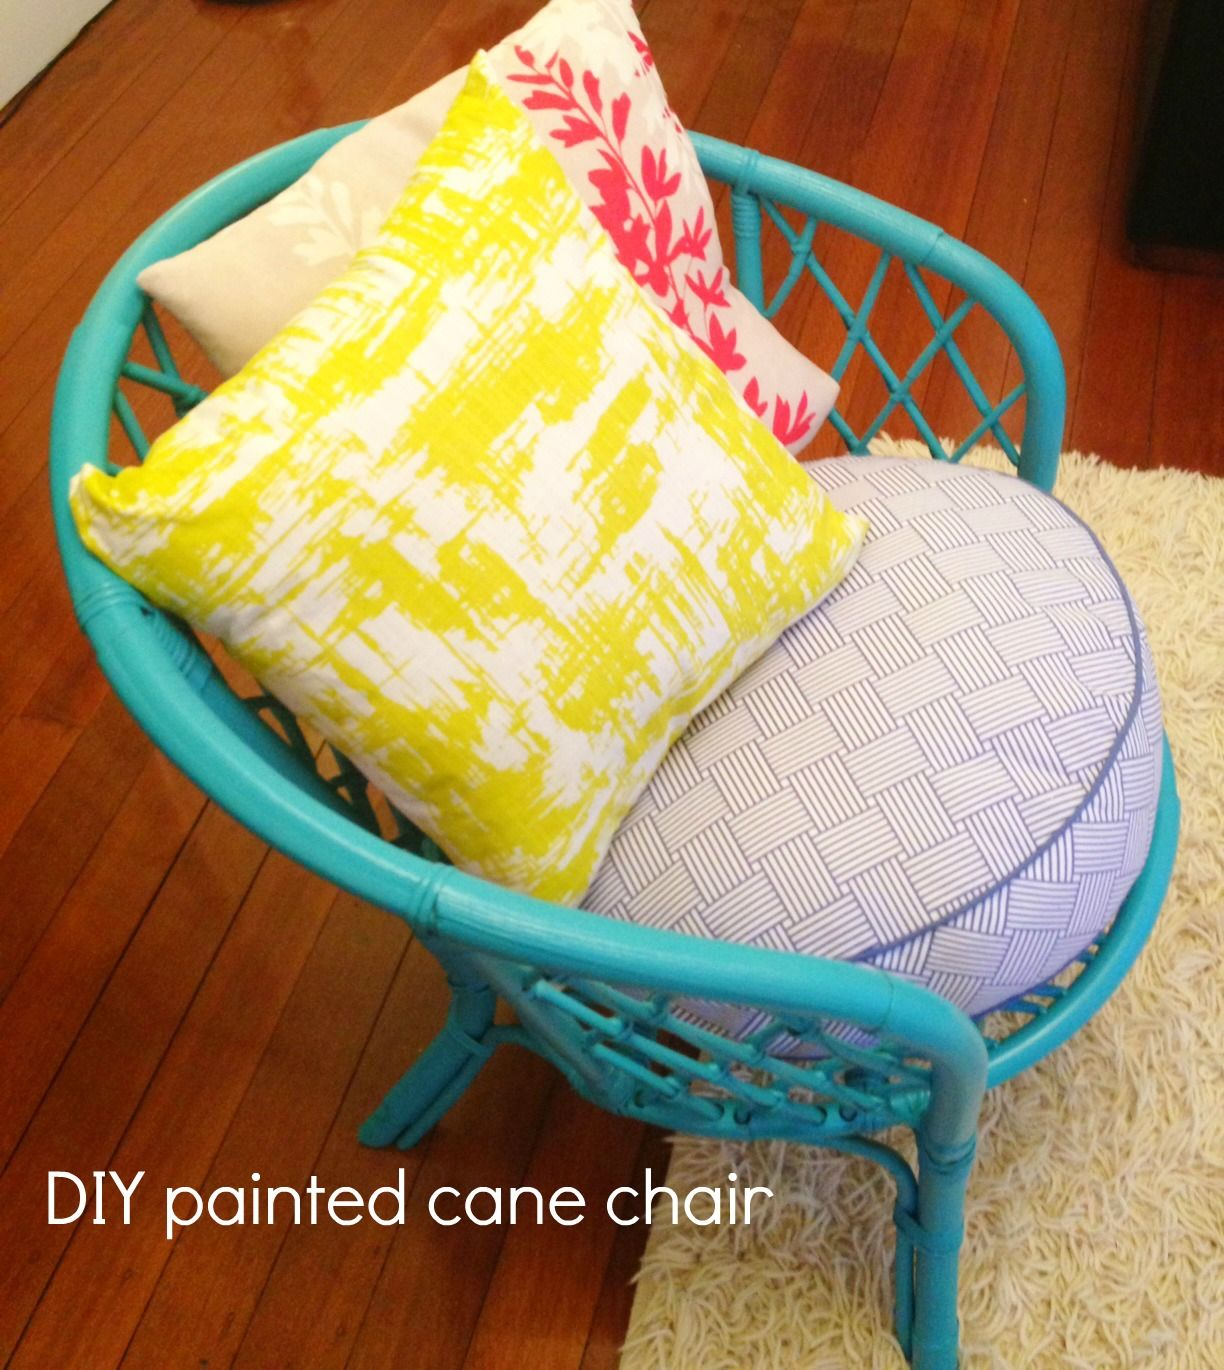 Used Cane Sofa For Sale In Bangalore: Best 25+ Cane Chairs Ideas On Pinterest